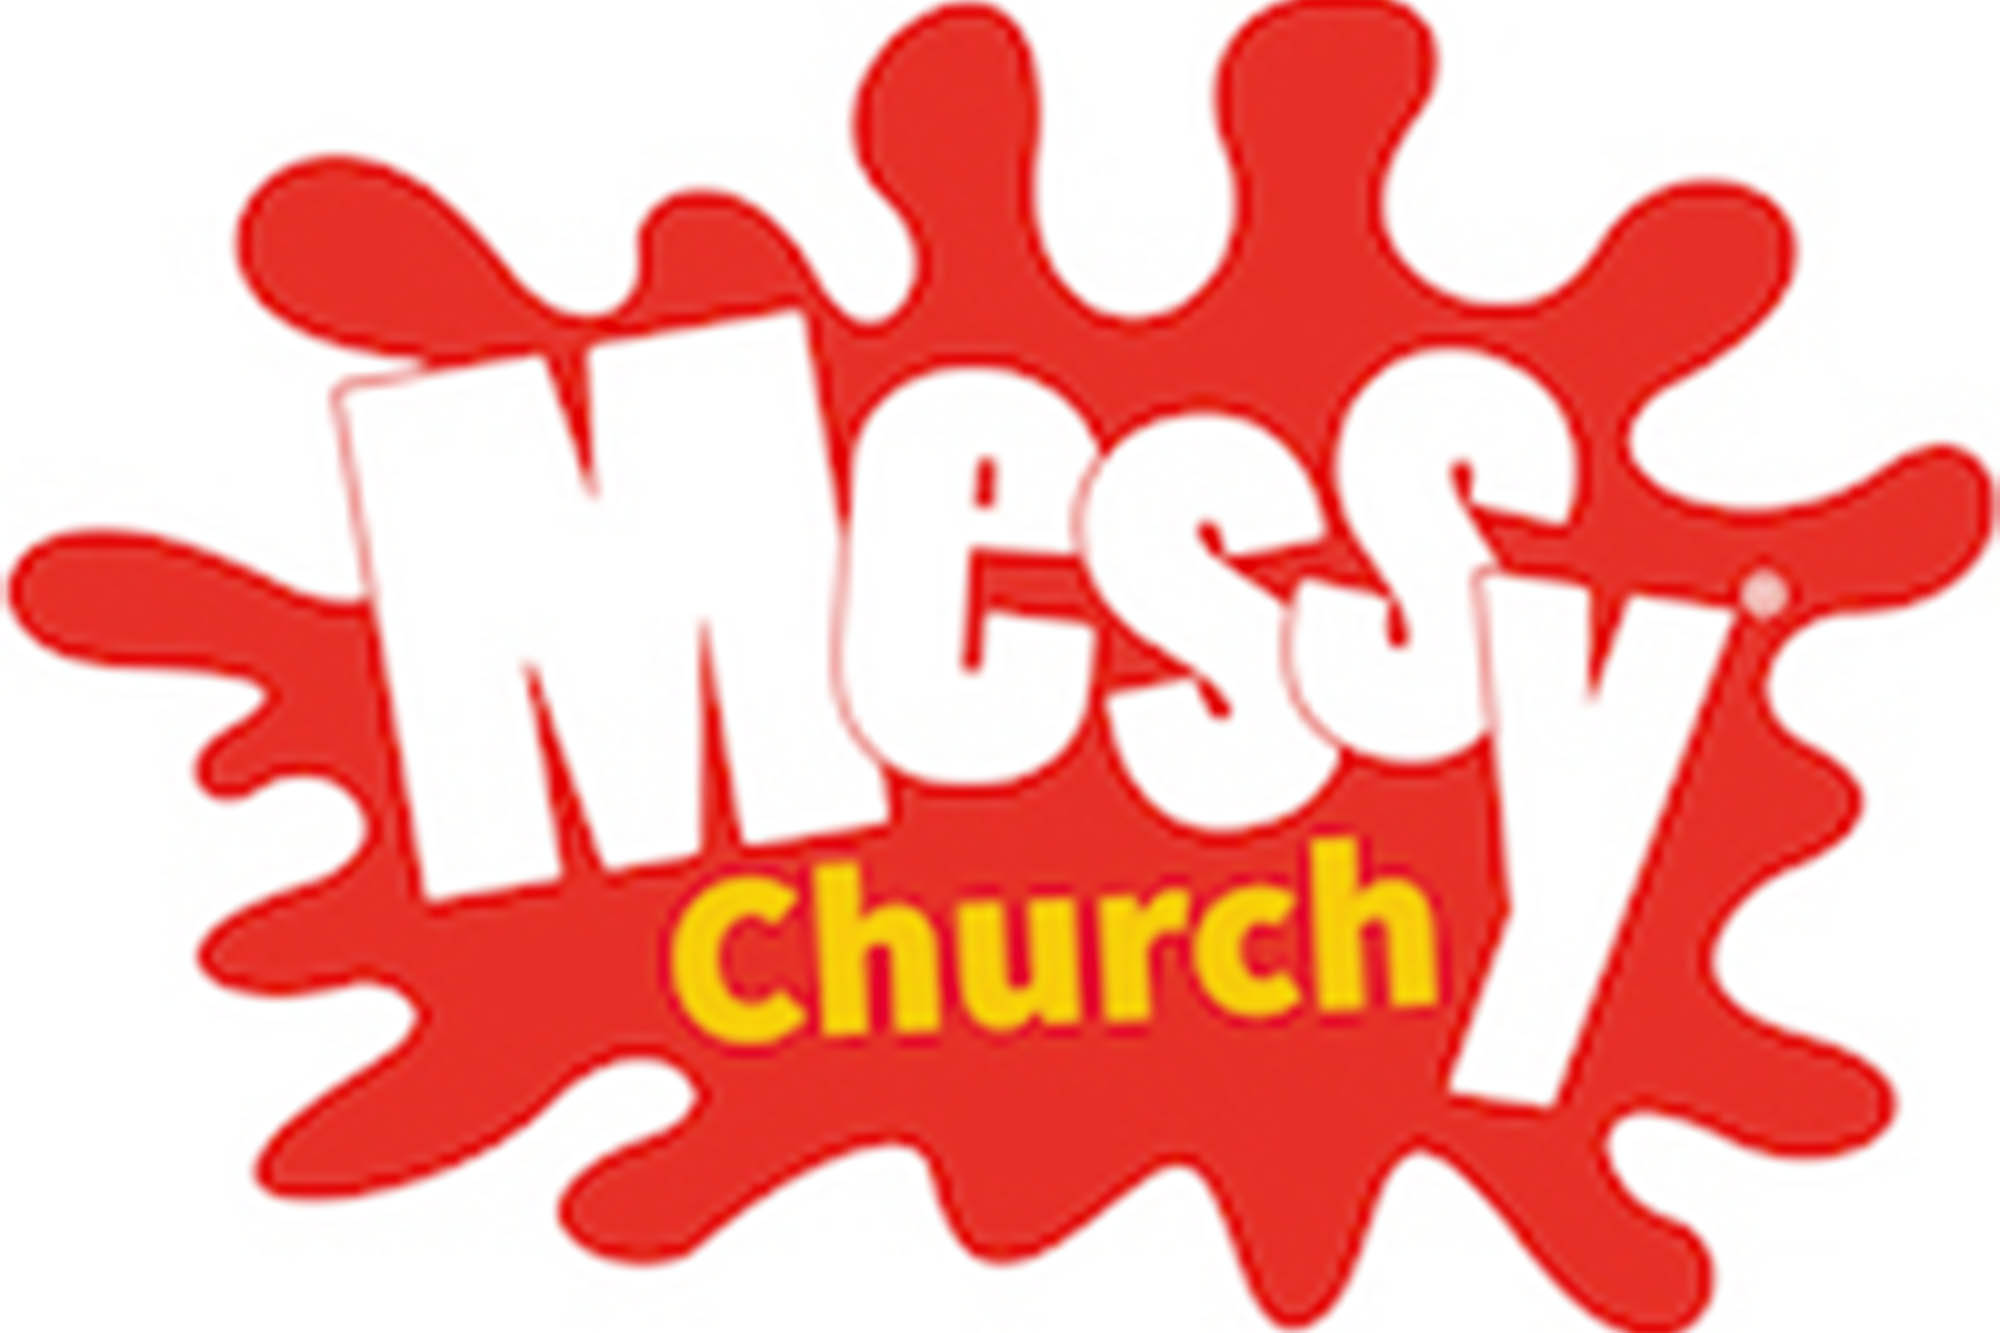 MessyChurch.jpg